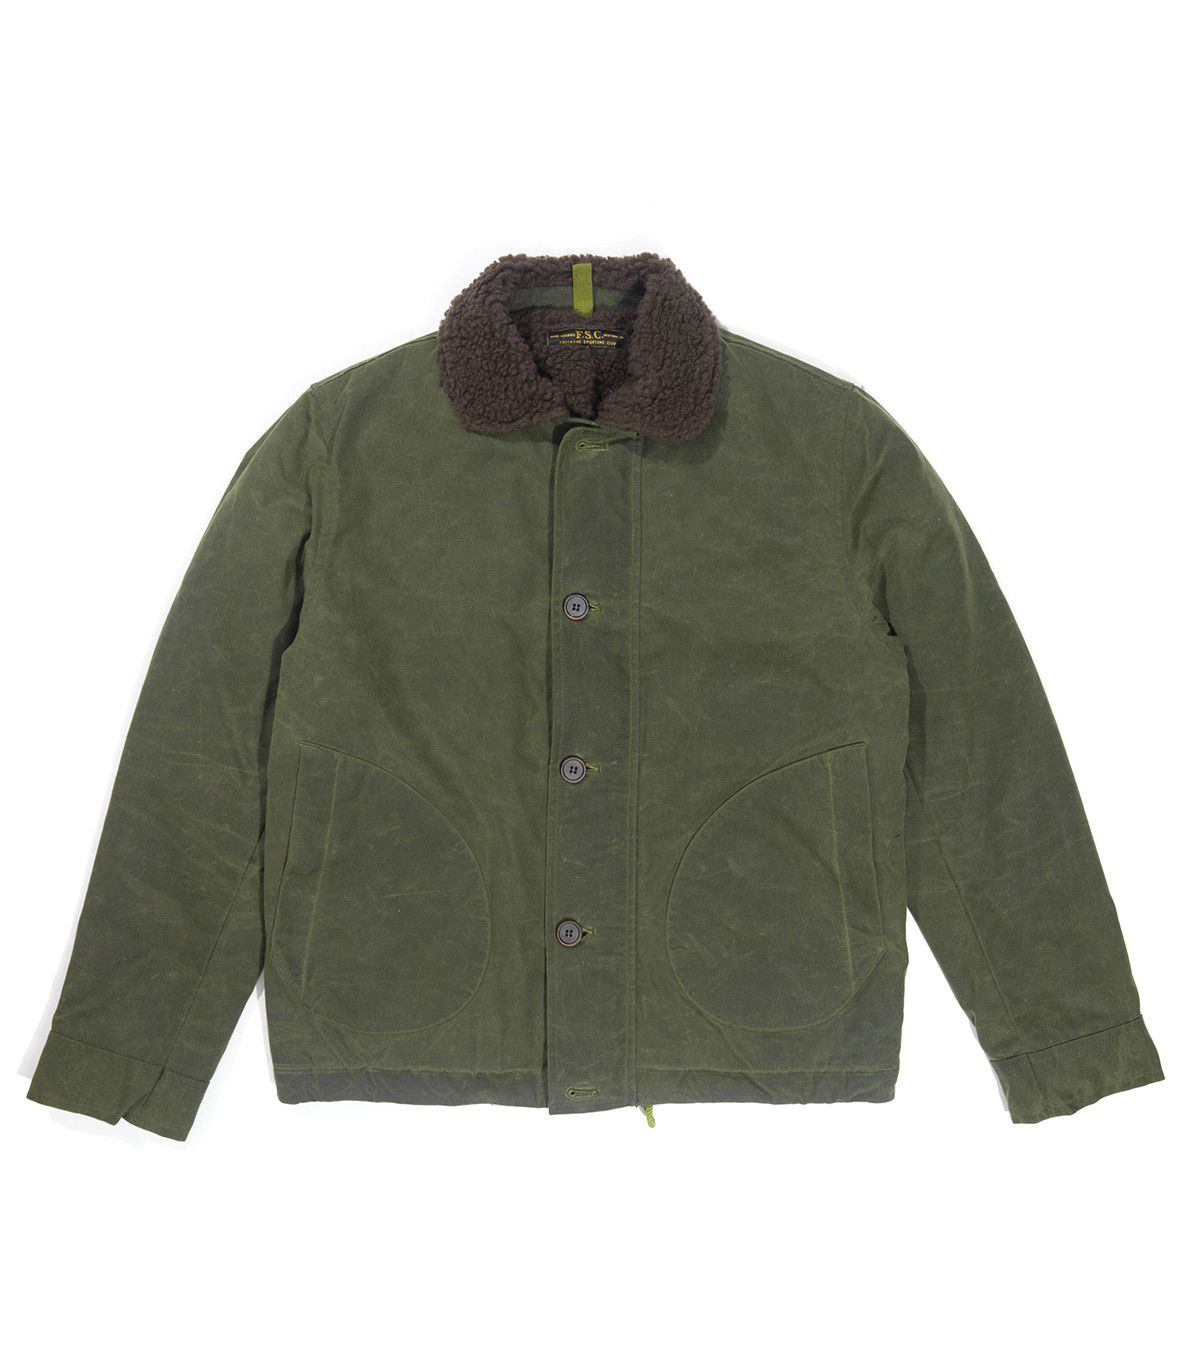 Waxed Cotton Deck Jacket with Alpaca Pile Lining